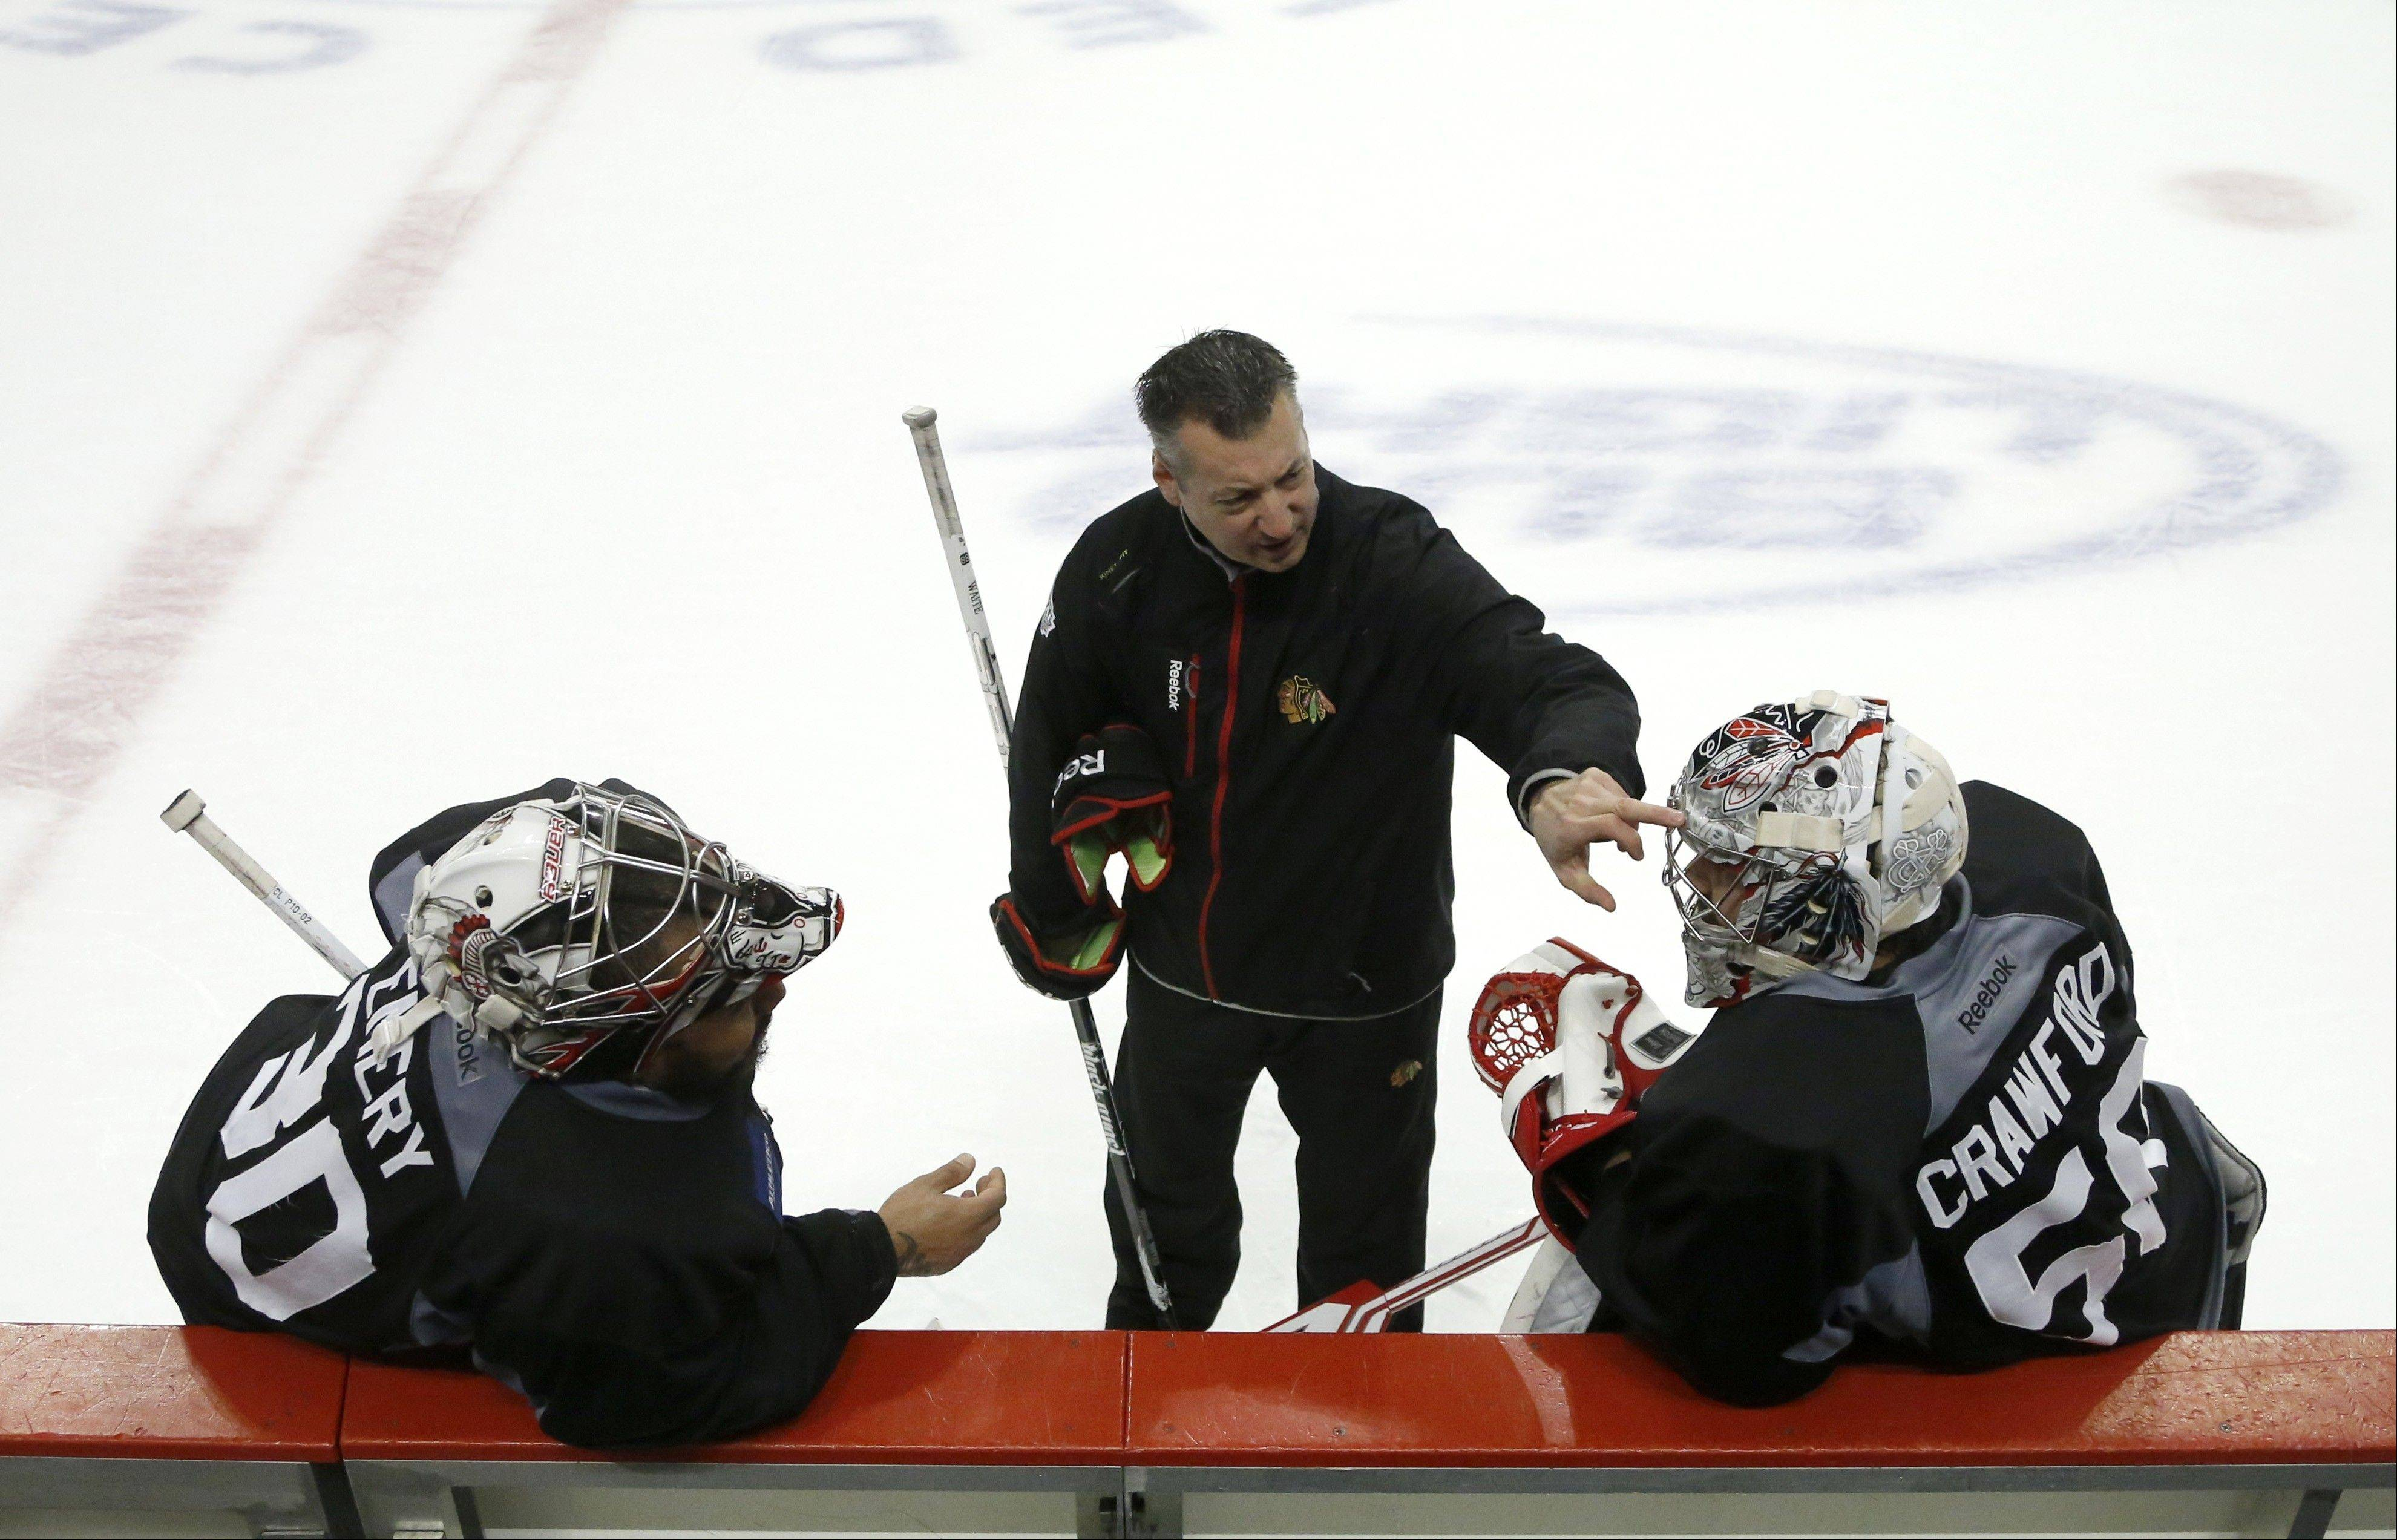 Blackhawks goalie coach Stephane Waite, center, talks to goalies Ray Emery, left, and Corey Crawford during practice Friday. Crawford will be in the net for Game 5 on Saturday against Boston.